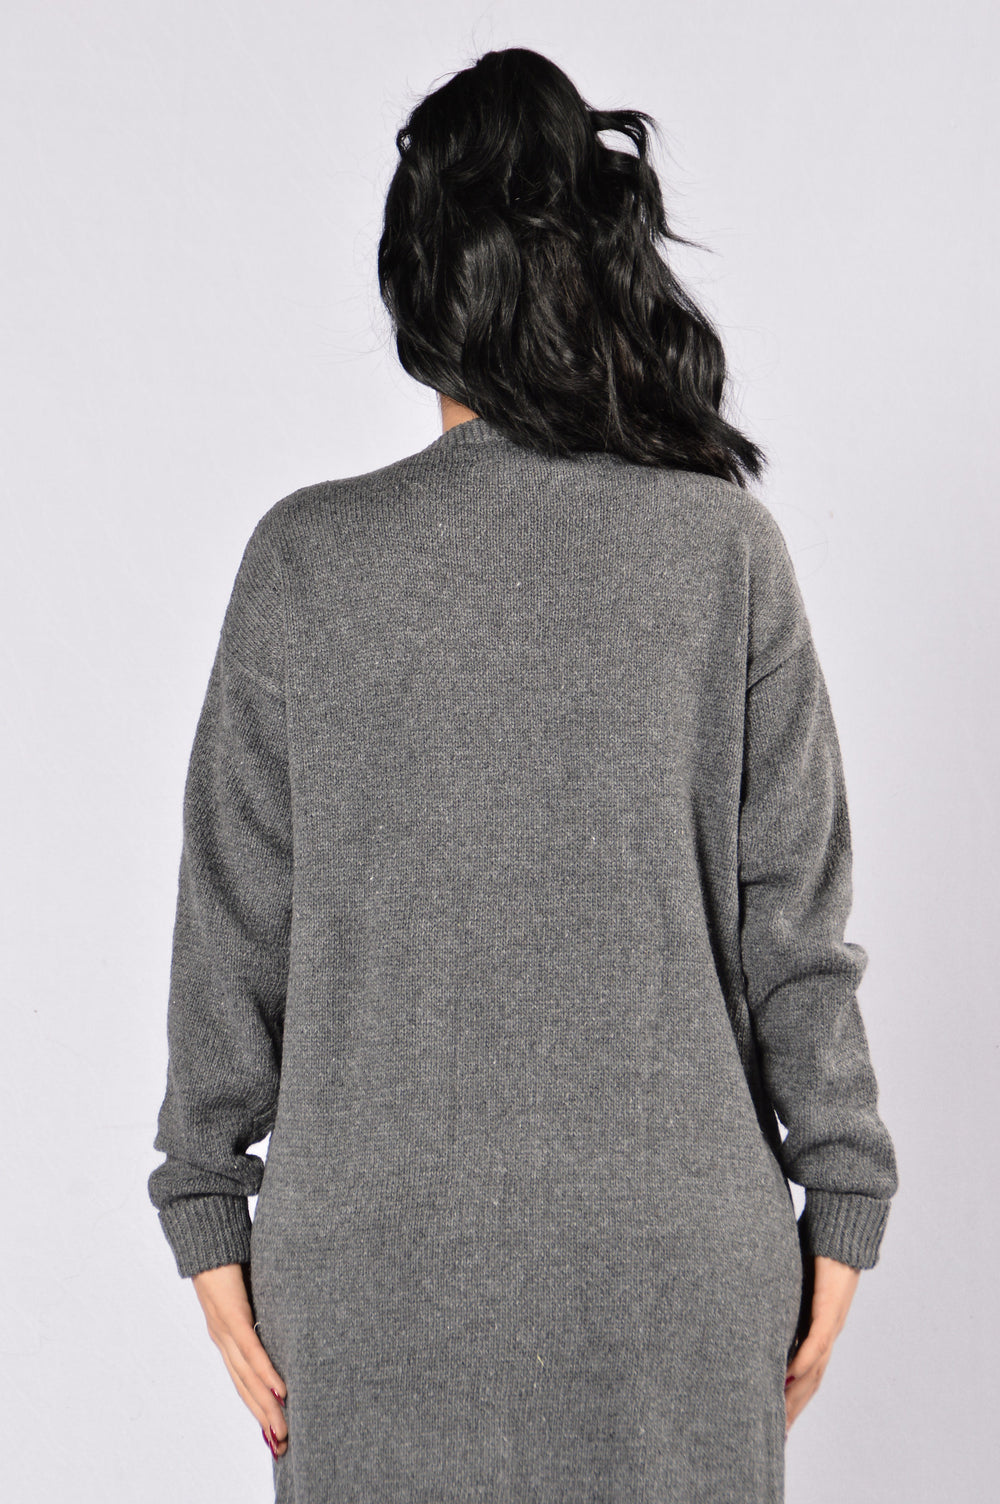 Not Letting Go Sweater - Charcoal